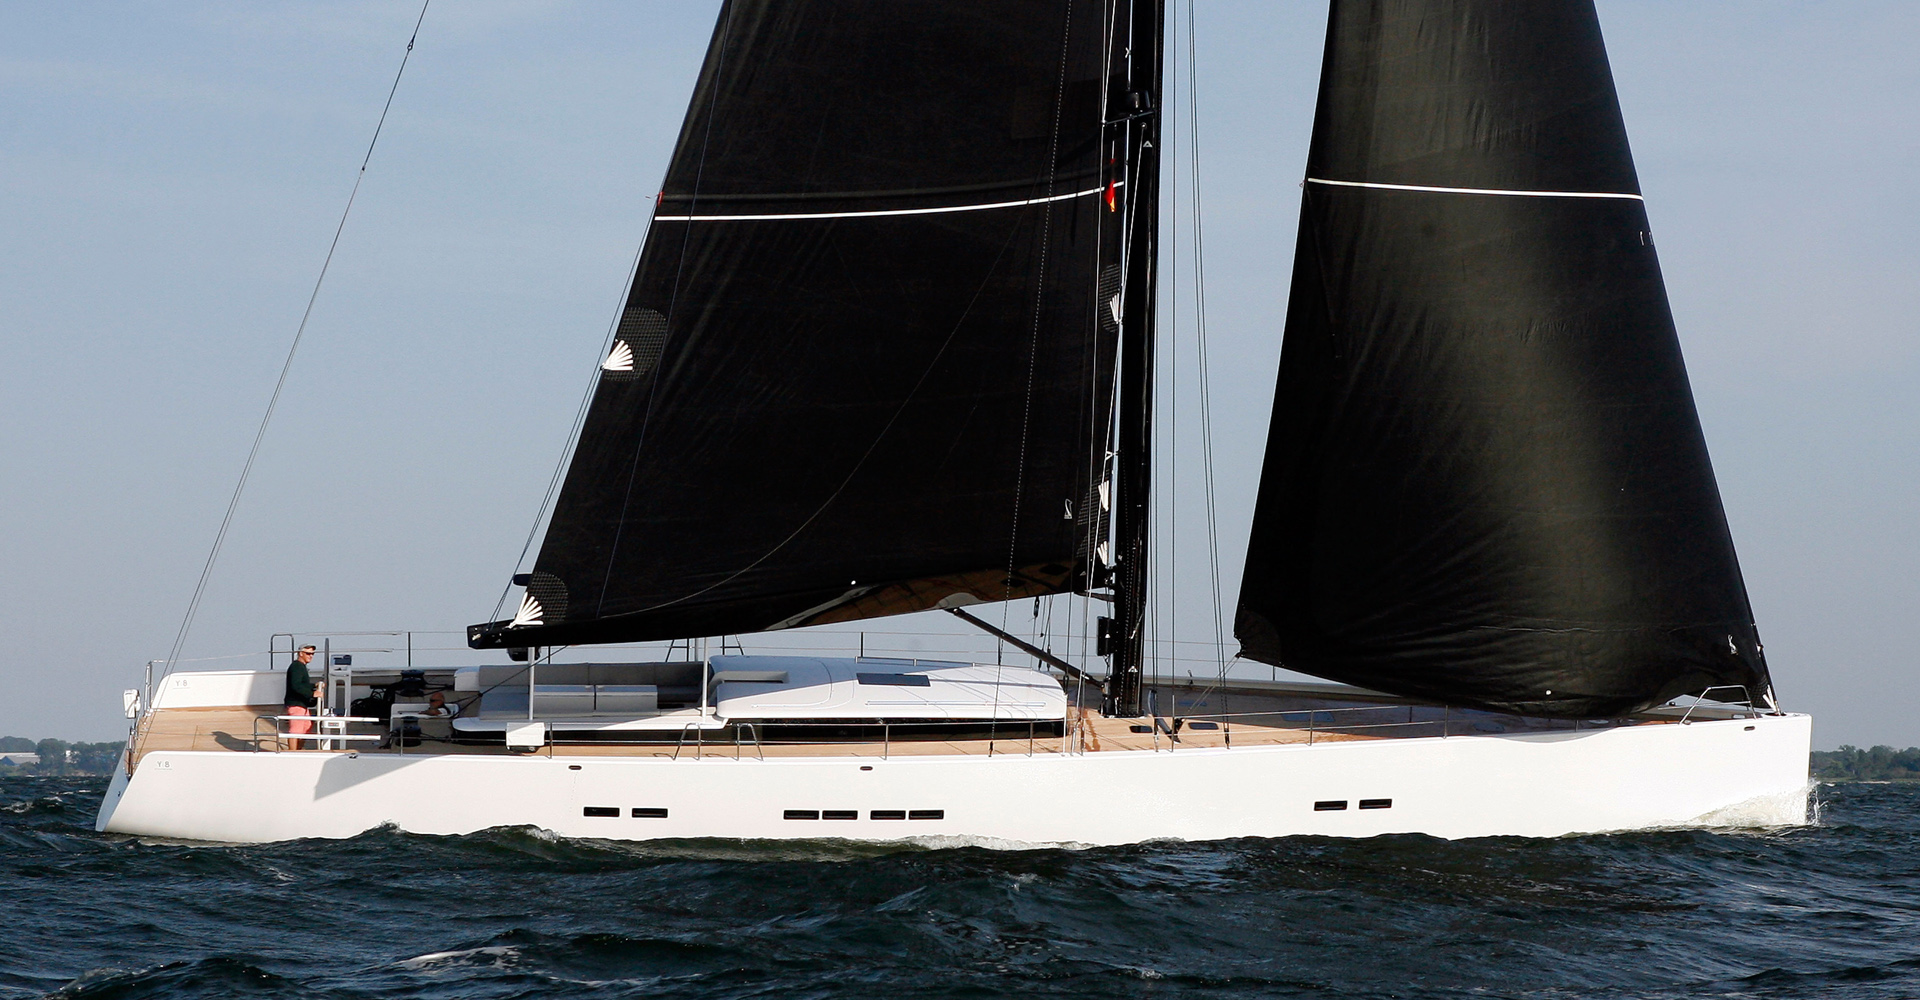 Profile of Brenta sailing yacht